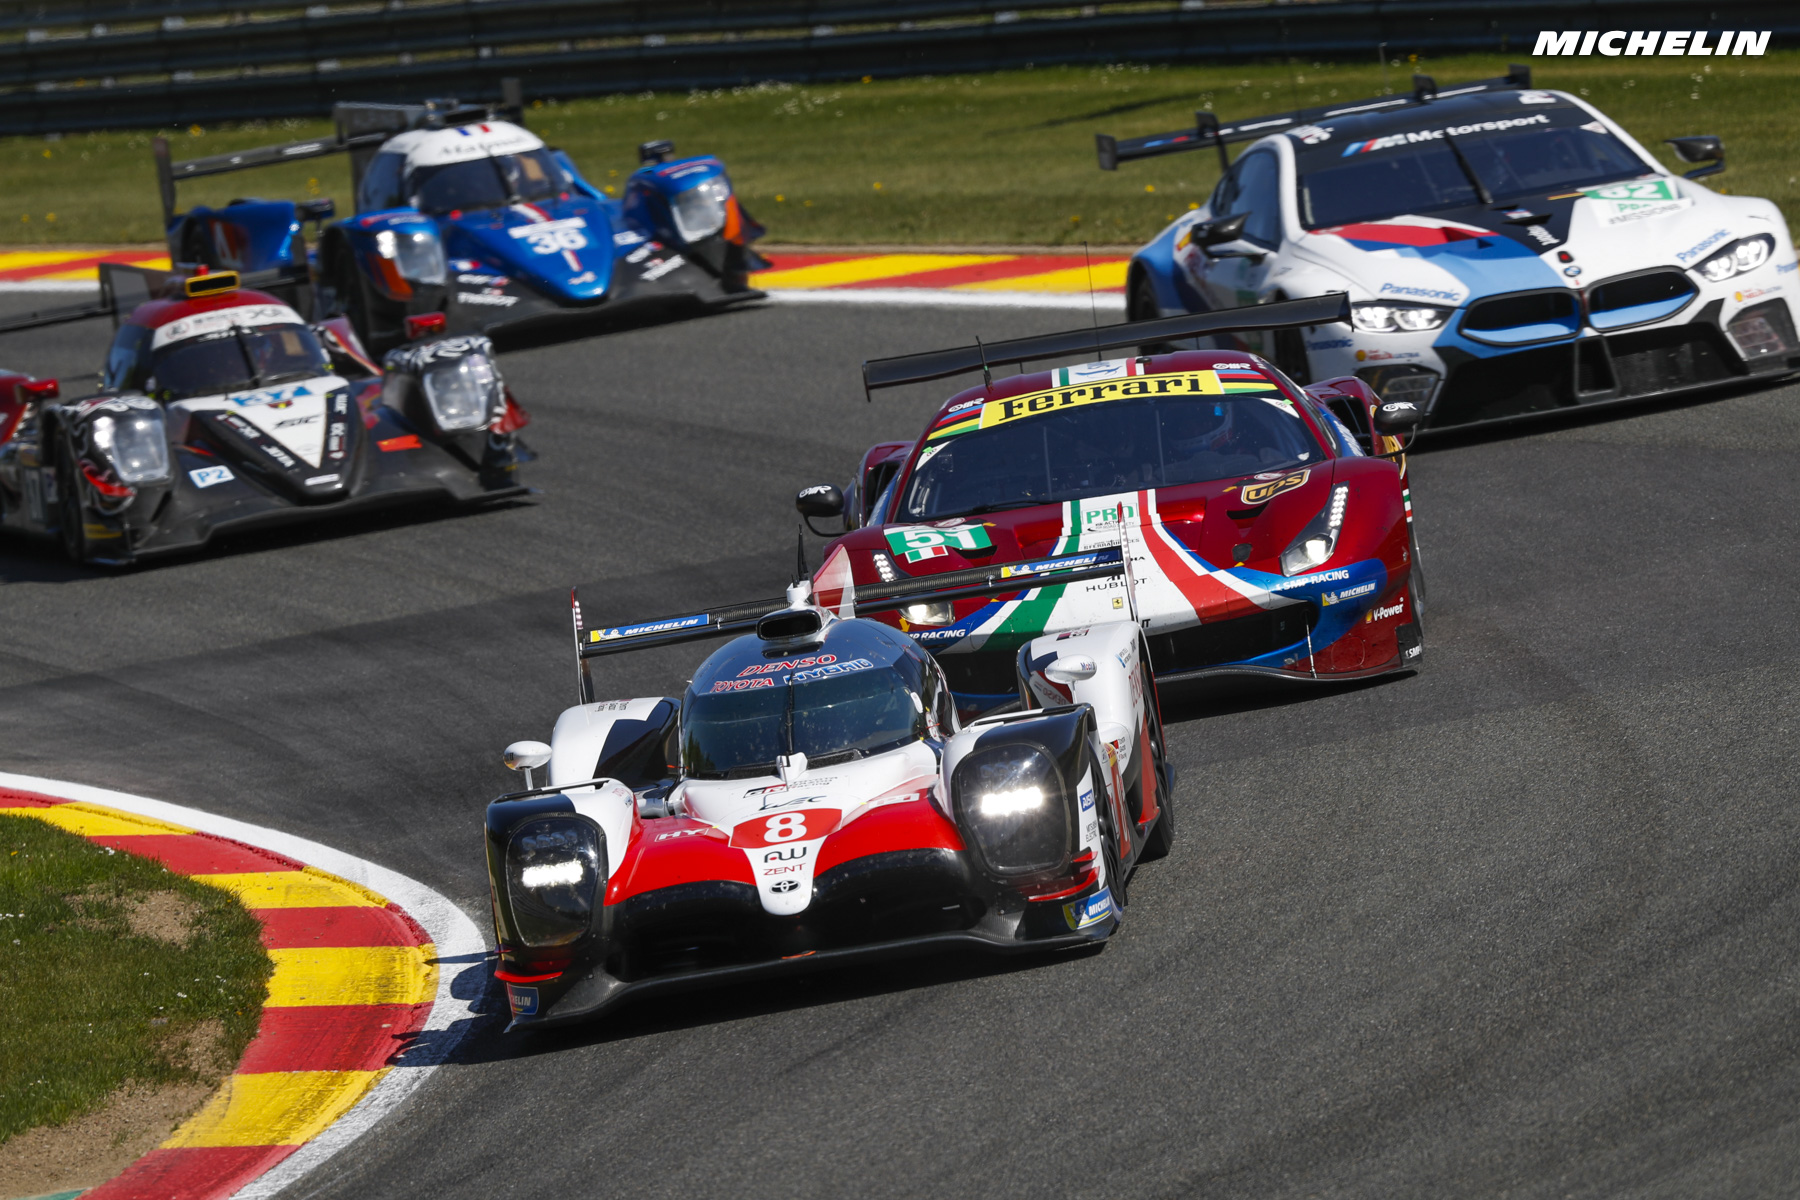 FIA WEC - 6 Hours of Spa - Racecard